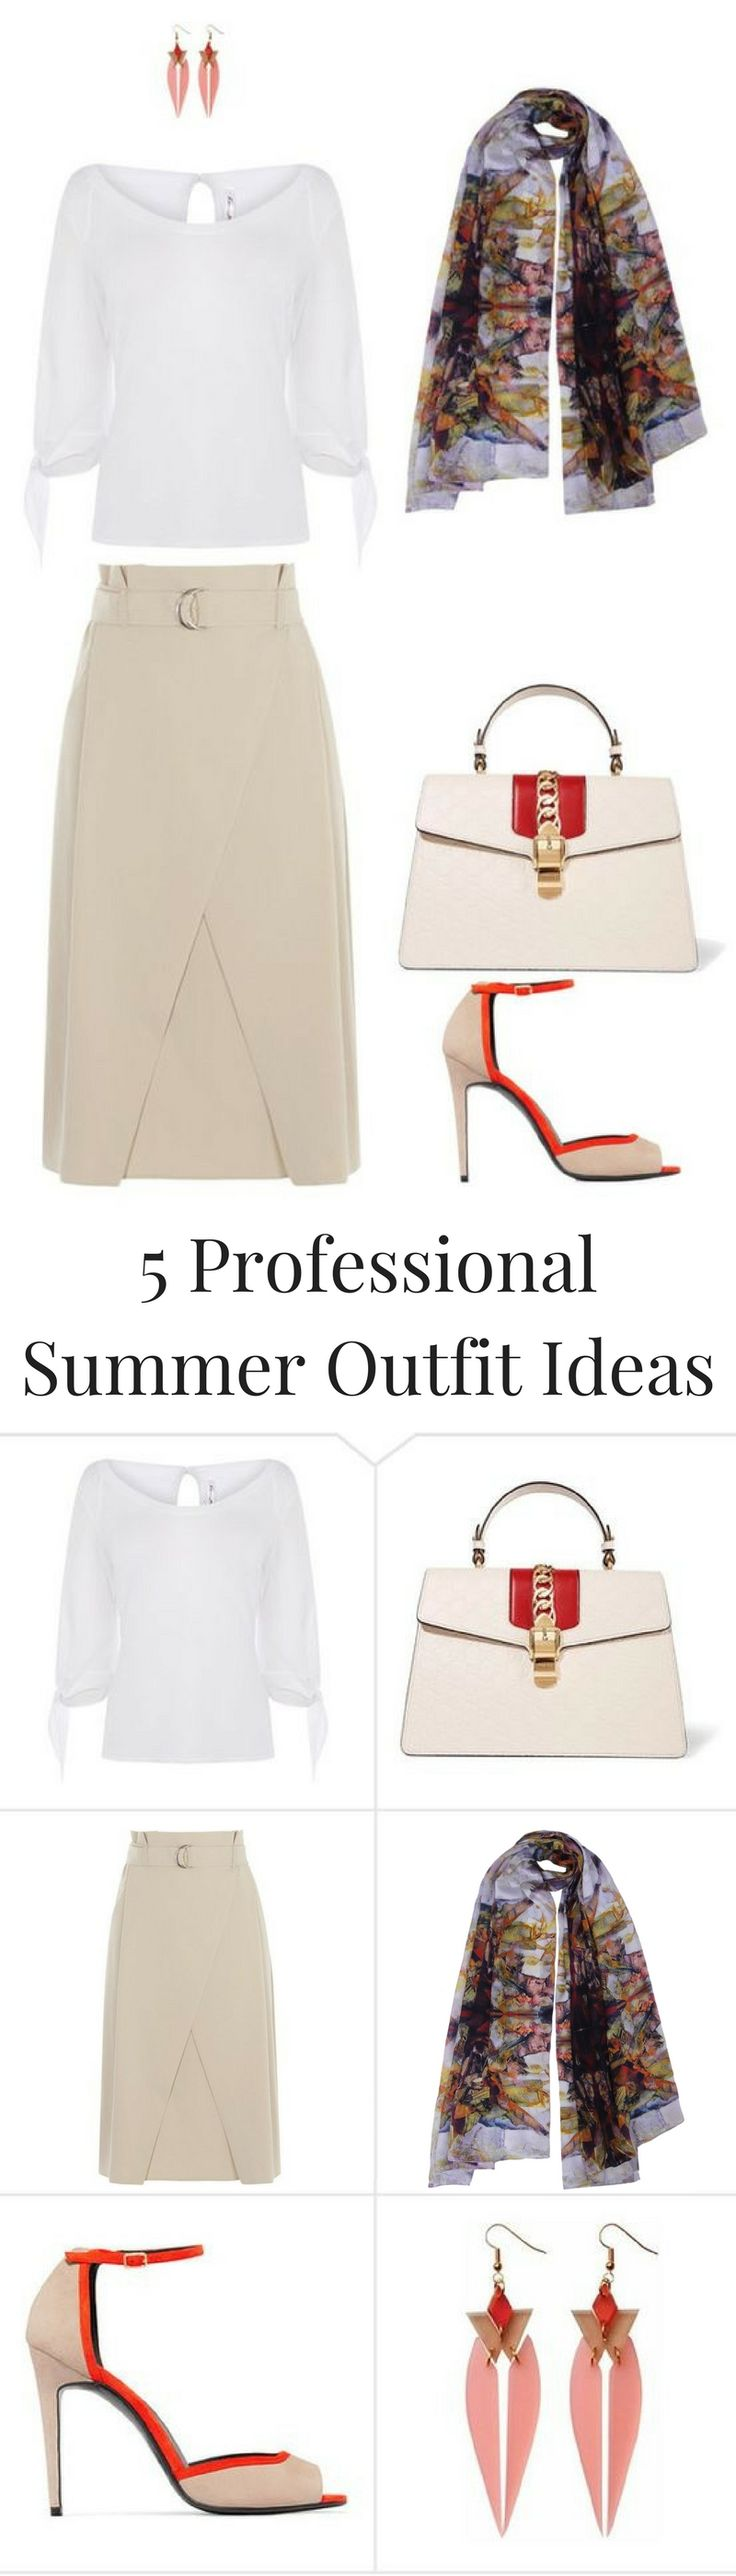 5 Professional Summer Outfit Ideas. Nude and Red outfit brightened up by accessories. Featuring Karen Millen white top and nude skirt and Aithne Musical Composition scarf. More professional summer style ideas in the blogpost.